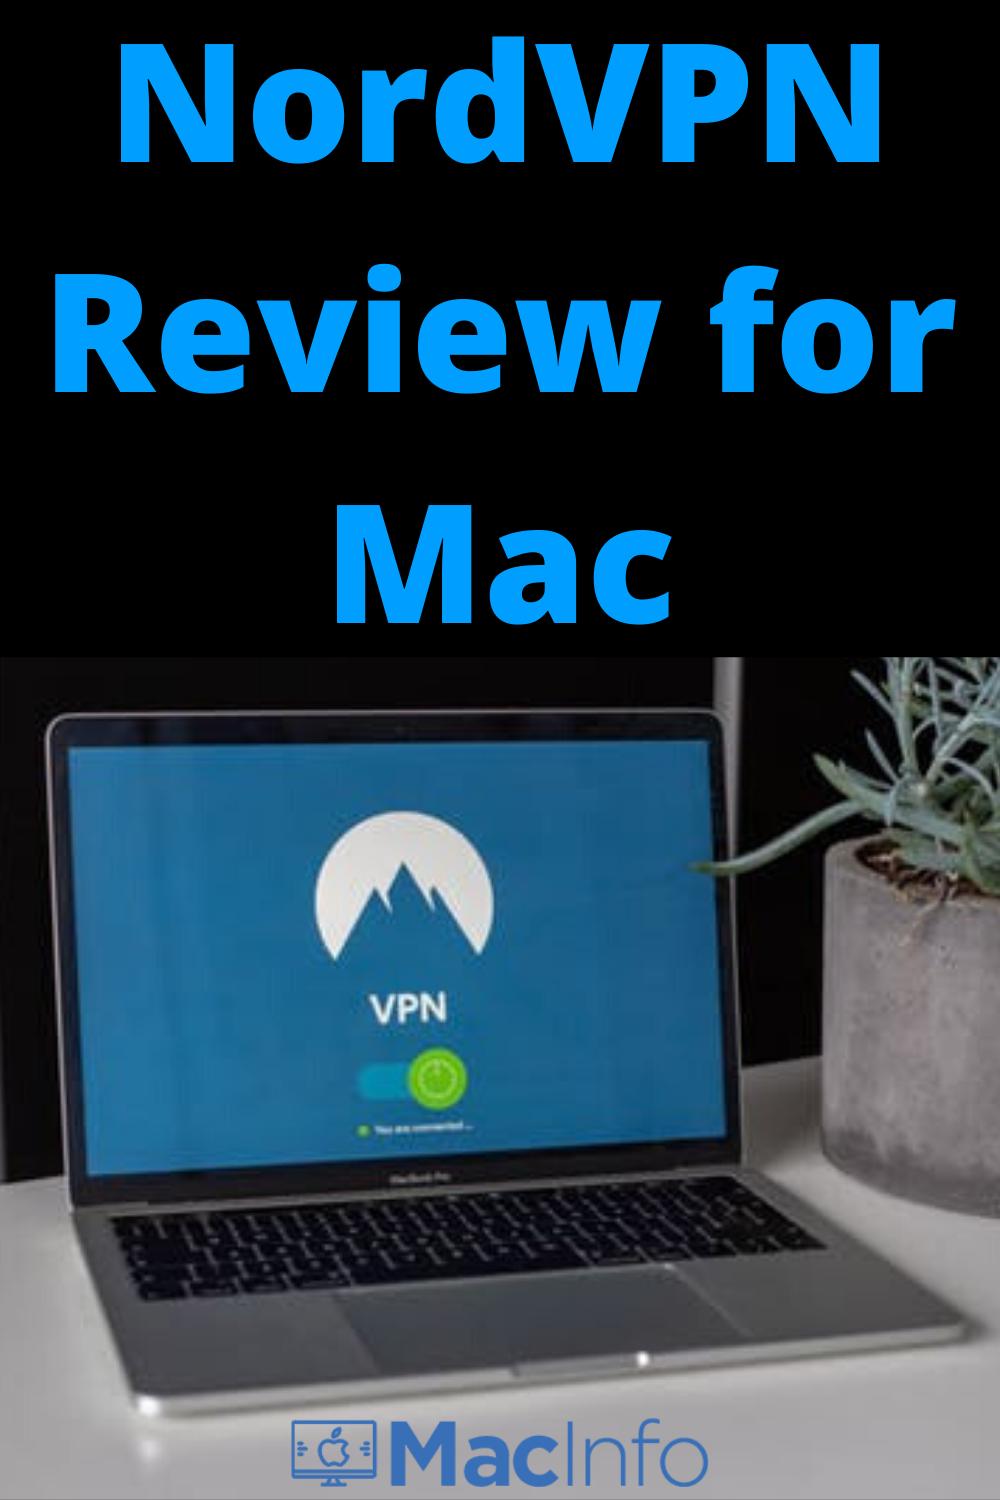 How To Find Vpn Ip Address On Mac